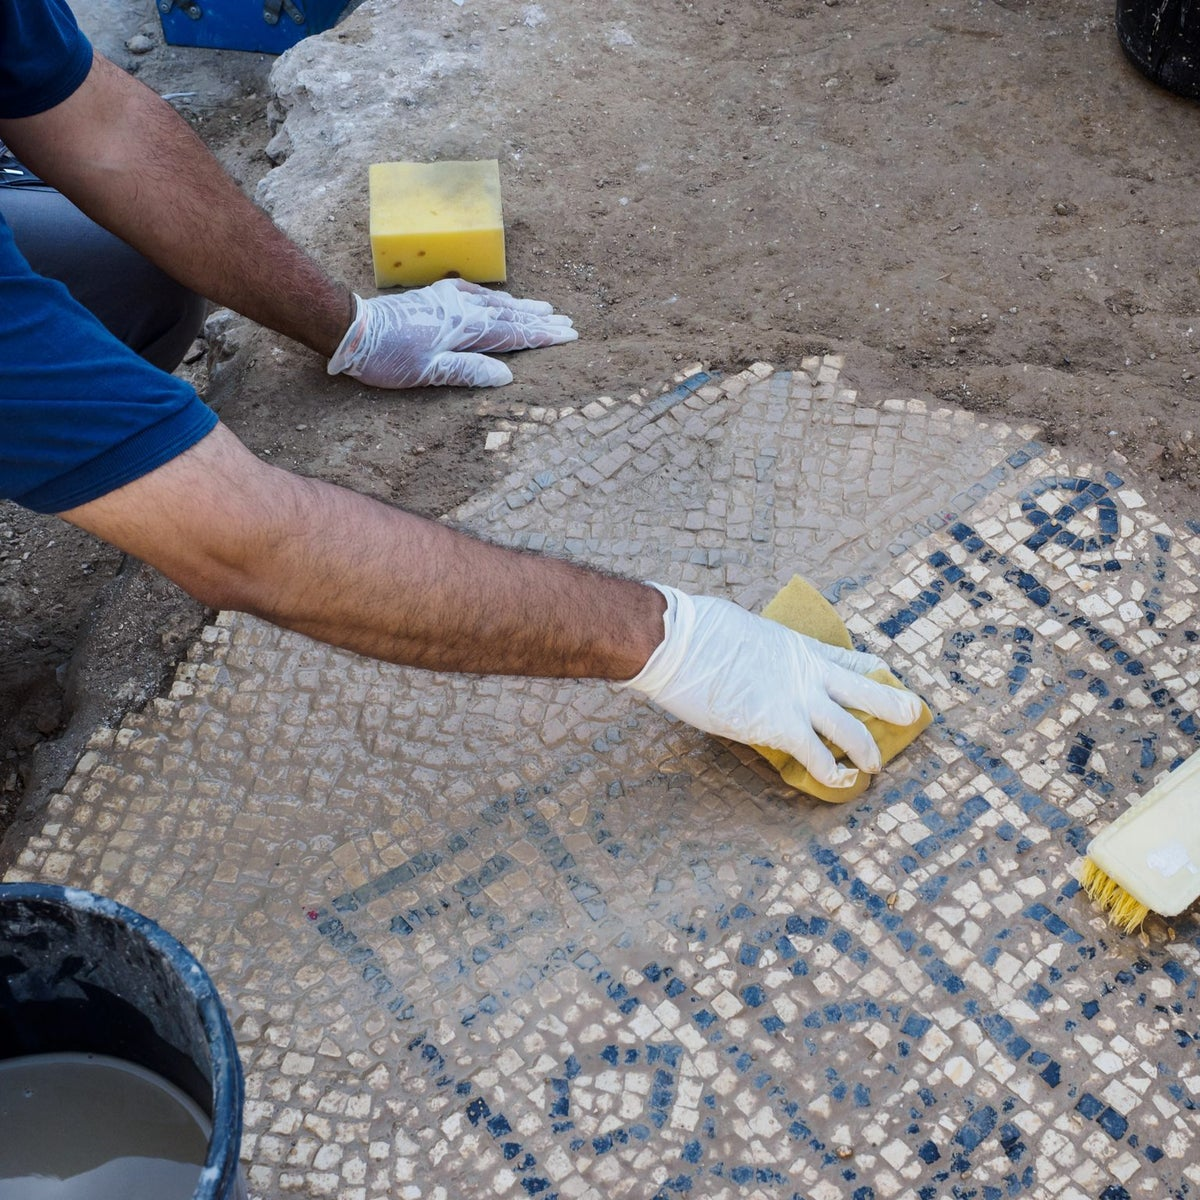 Cleaning the mosaic found in what seems to be a pilgrim's hotel in Jerusalem. The mosaic mentions both the Emperor Justinian and Abbot Constantine